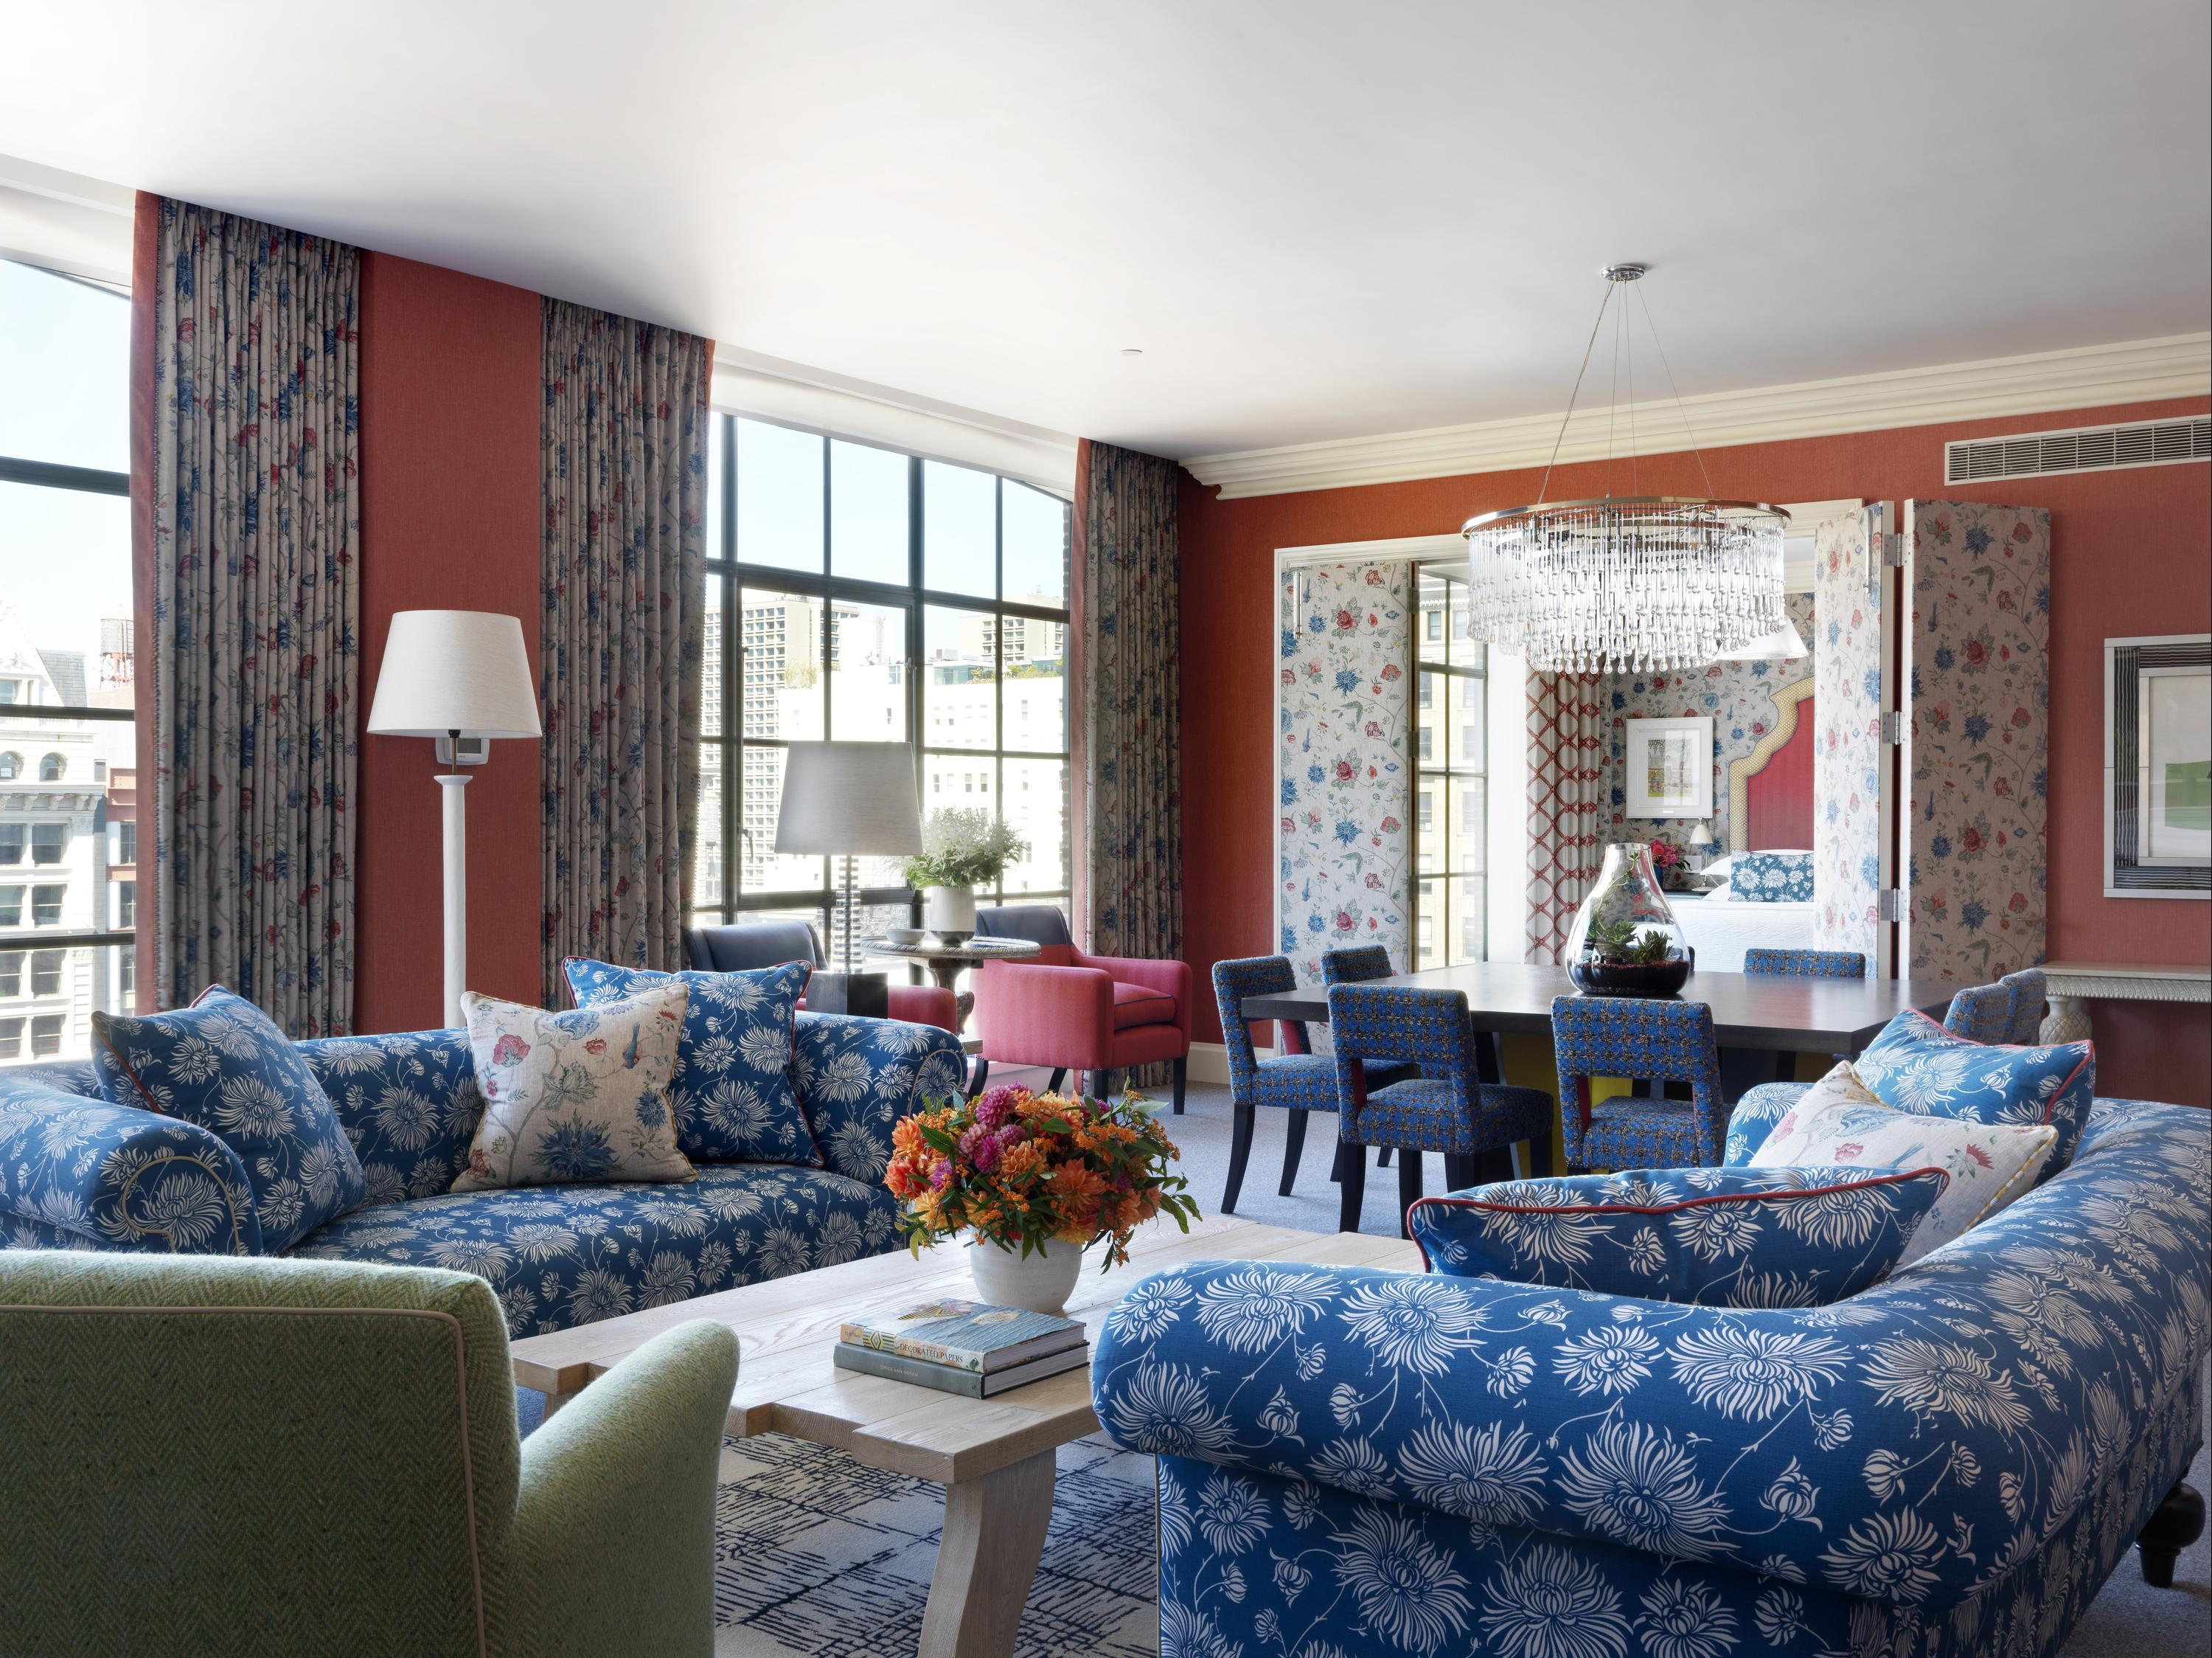 Crosby Street Hotel New York Ny United States Compare Deals